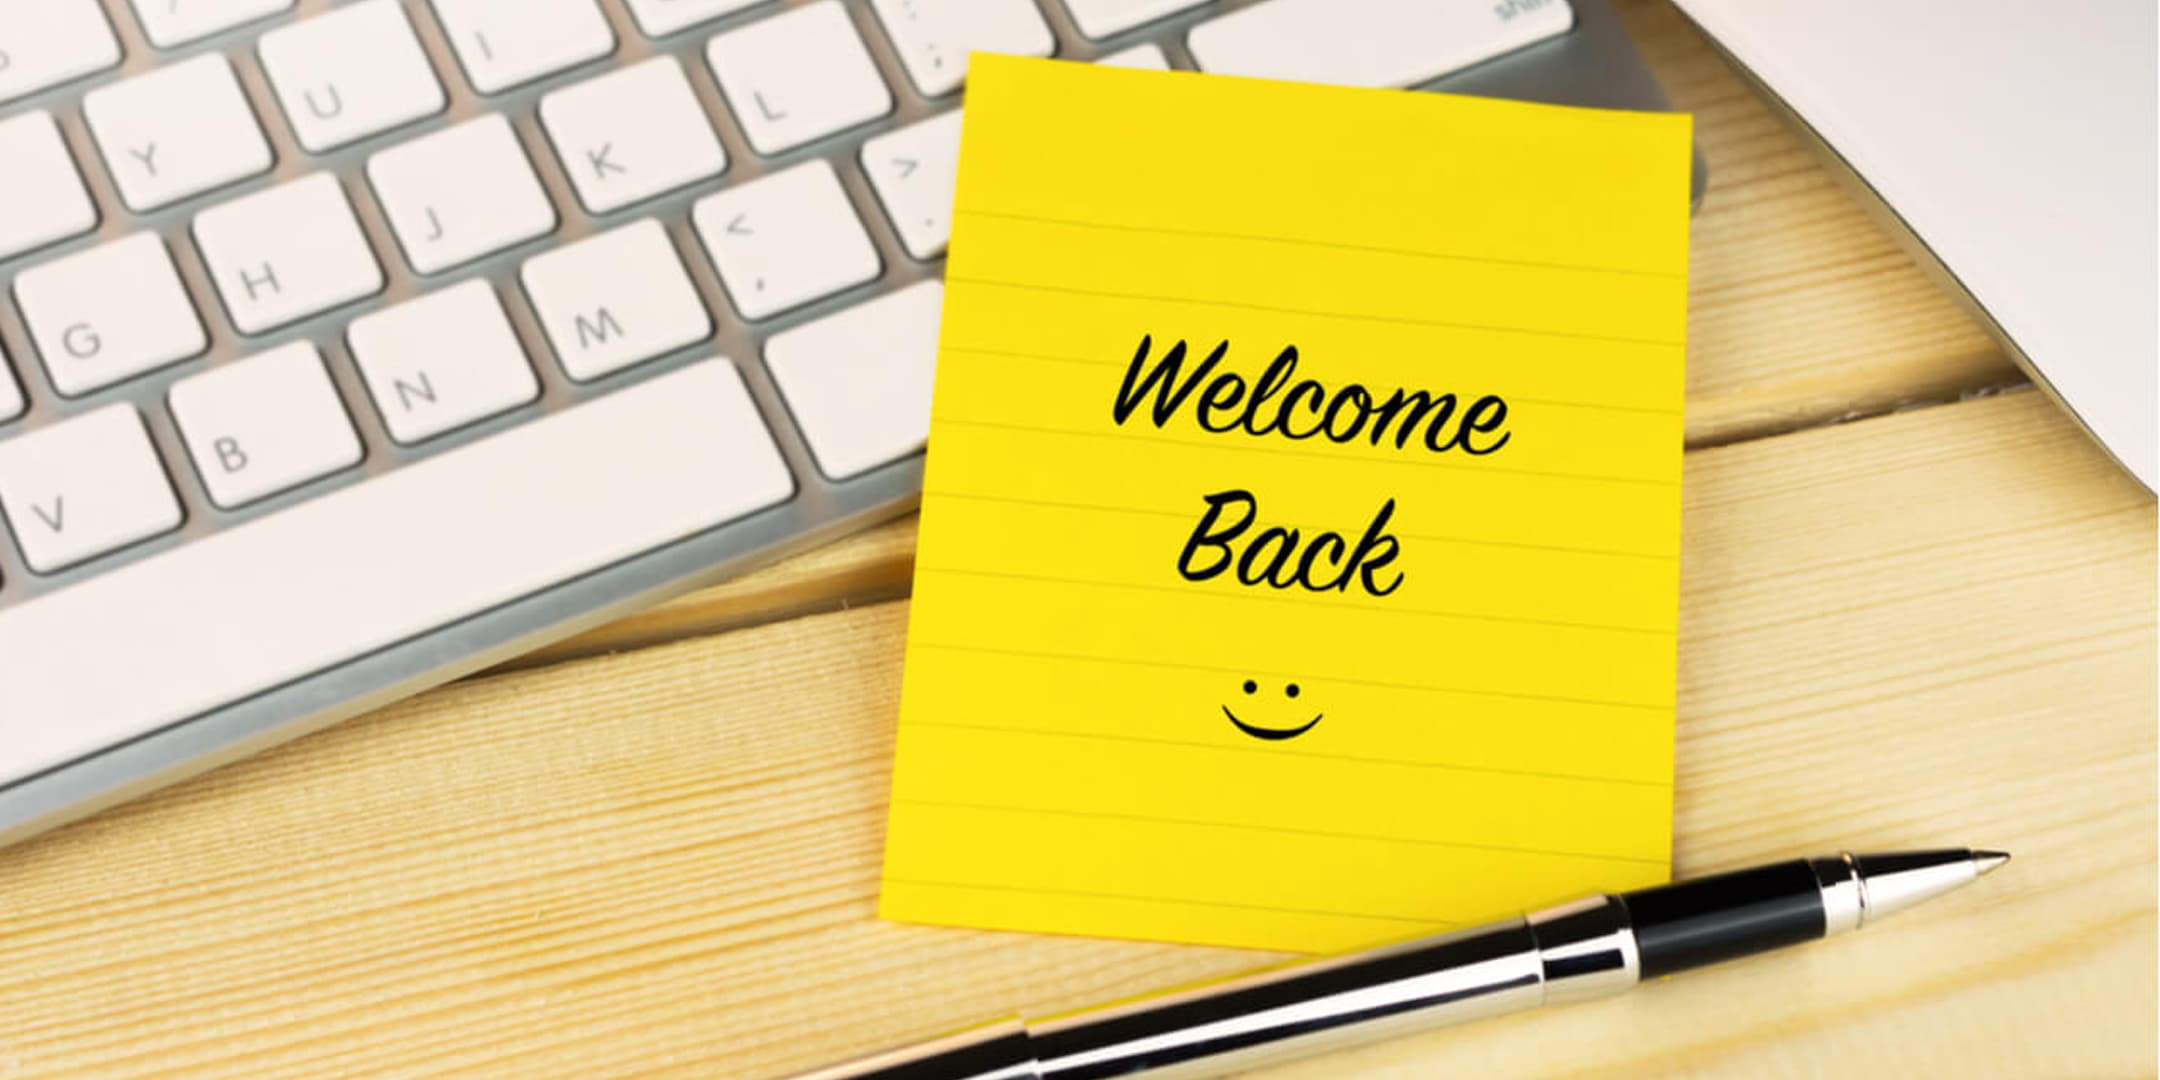 Welcome Back Sticky Note on Keyboard